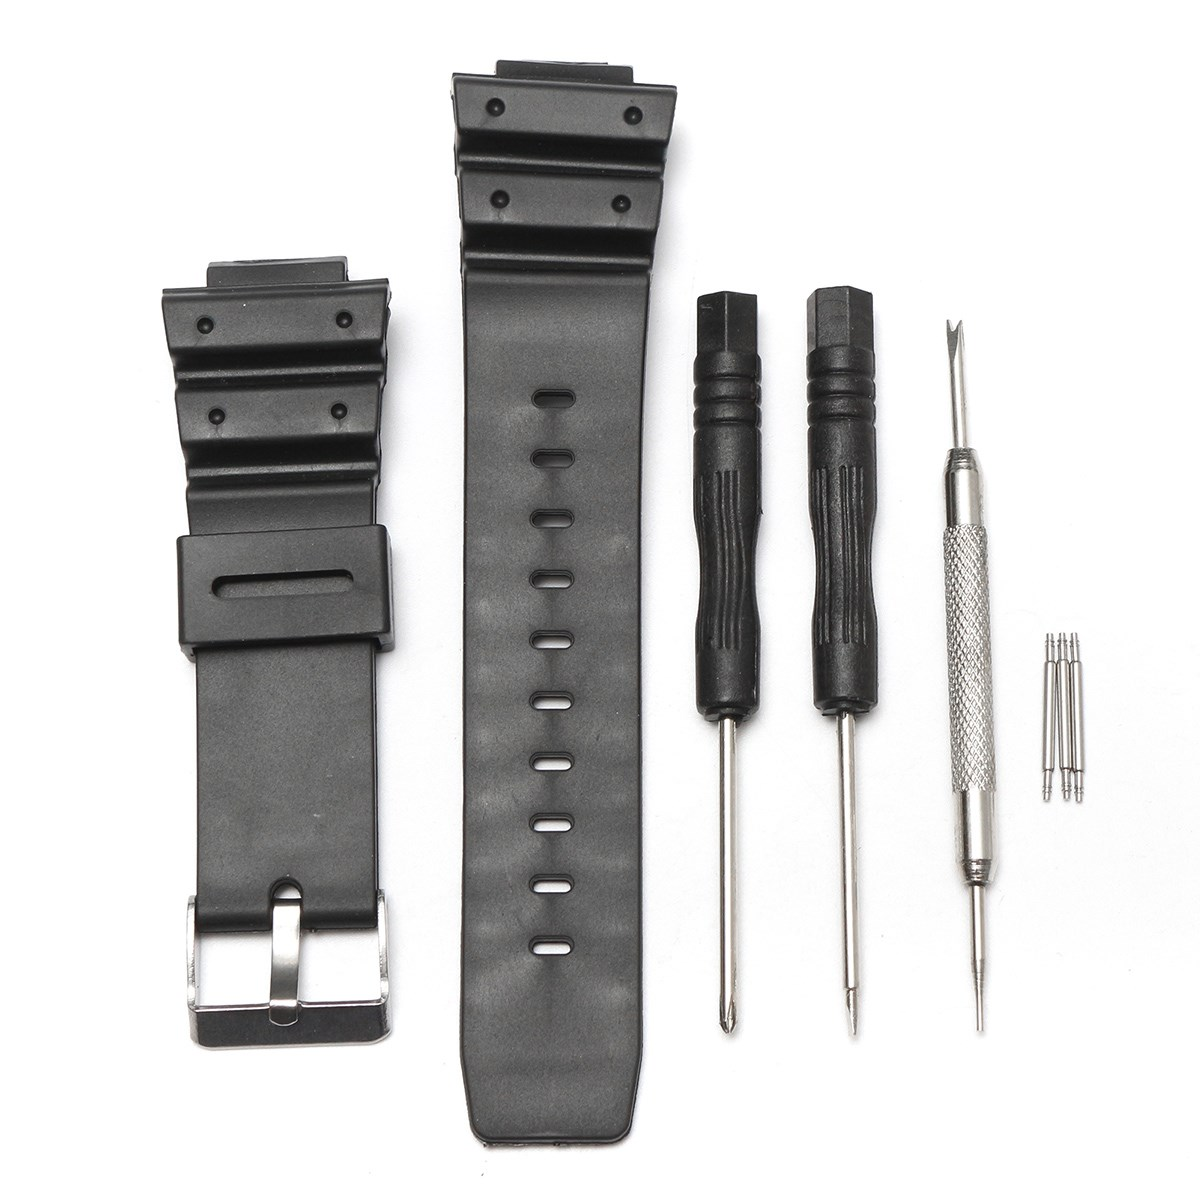 Rubber Watch Bands Strap Sport Waterproof 25mm Men Silicone Bracelet With Silver Steel Metal Needle Buckle For/Casio Accessories hengrc 22mm rubber watch band strap men soft diving black hole silicone sport watchband bracelet metal pin buckle accessories